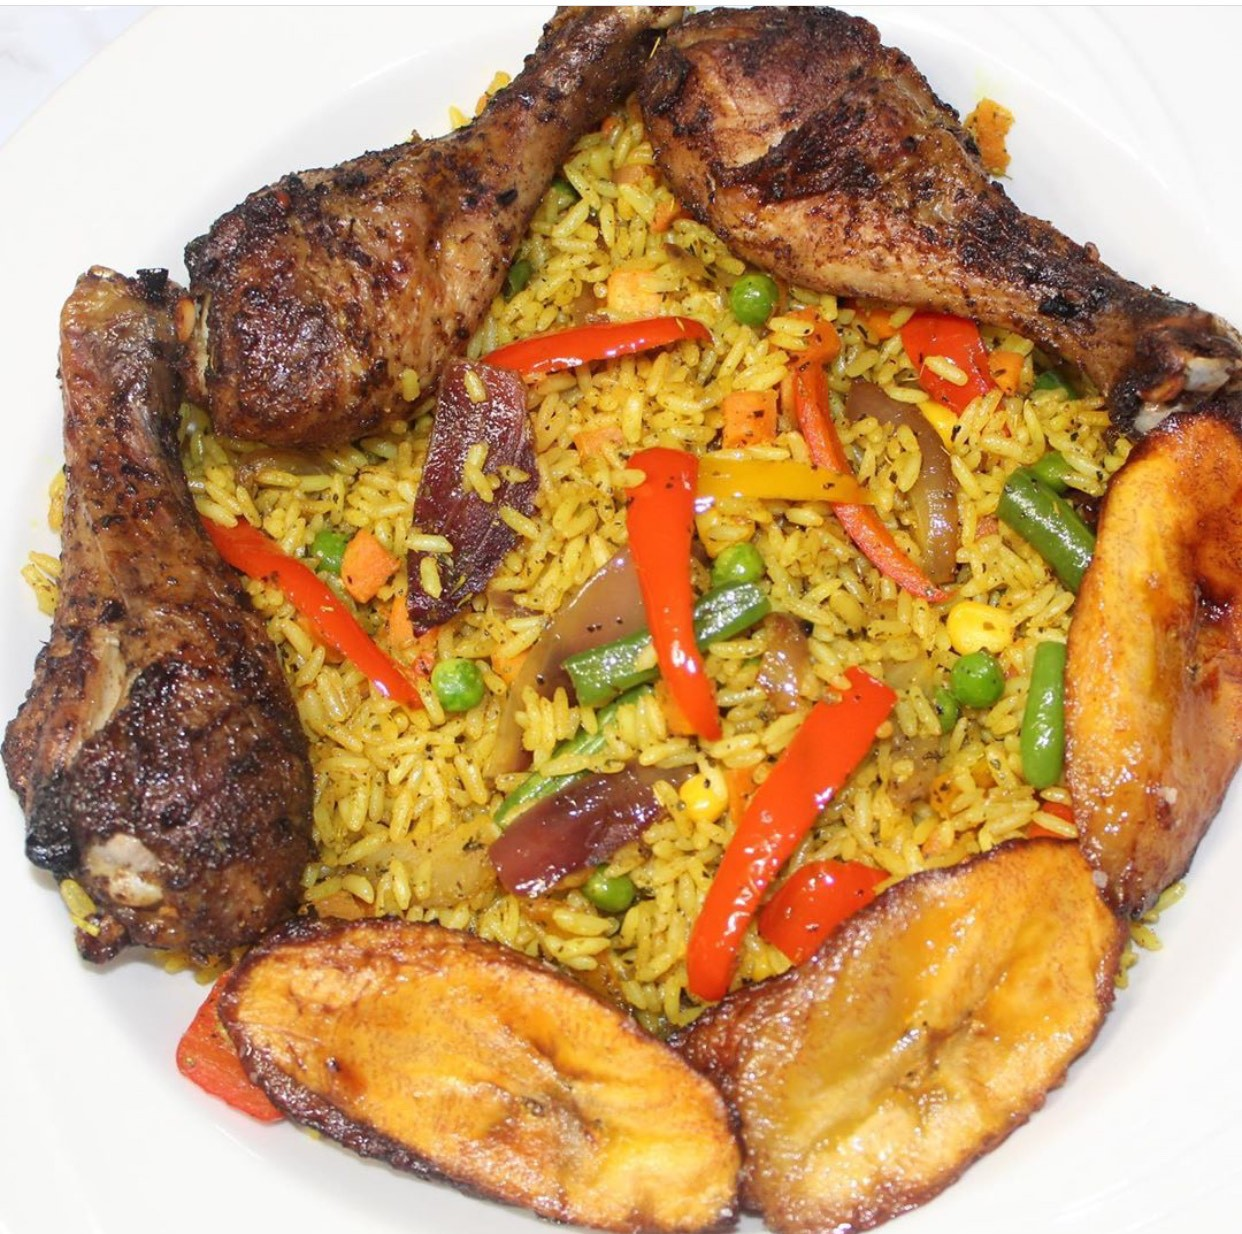 How to use Afromeals Fried rice seasoning to make Afromeals famous Fried Rice!